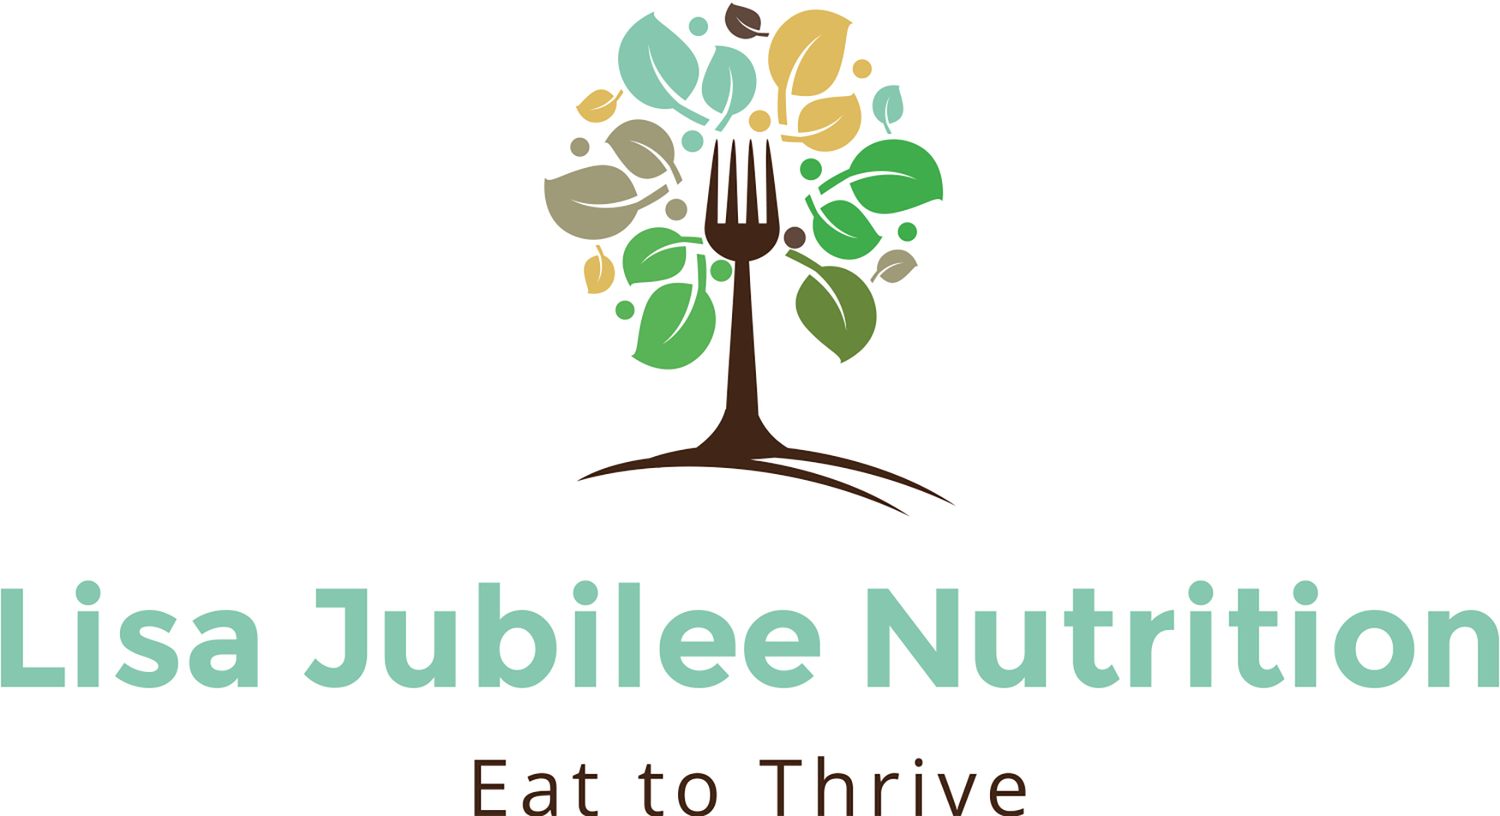 Lisa Jubilee Nutrition